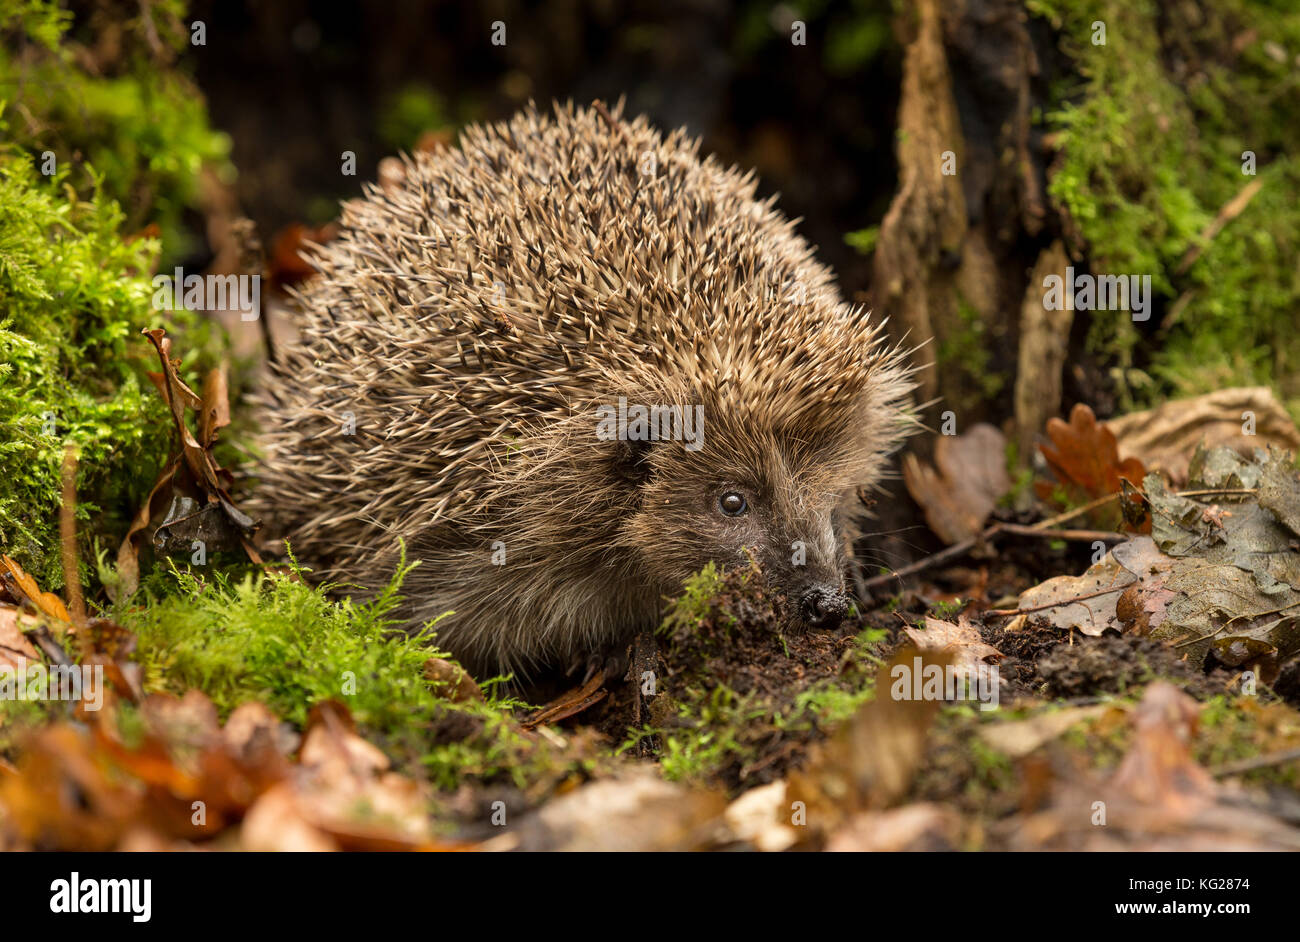 Hedgehog, wild, native, European Hedgehog foraging for food in Autumn leaves. Facing right. Scientific name: Erinaceus Stock Photo